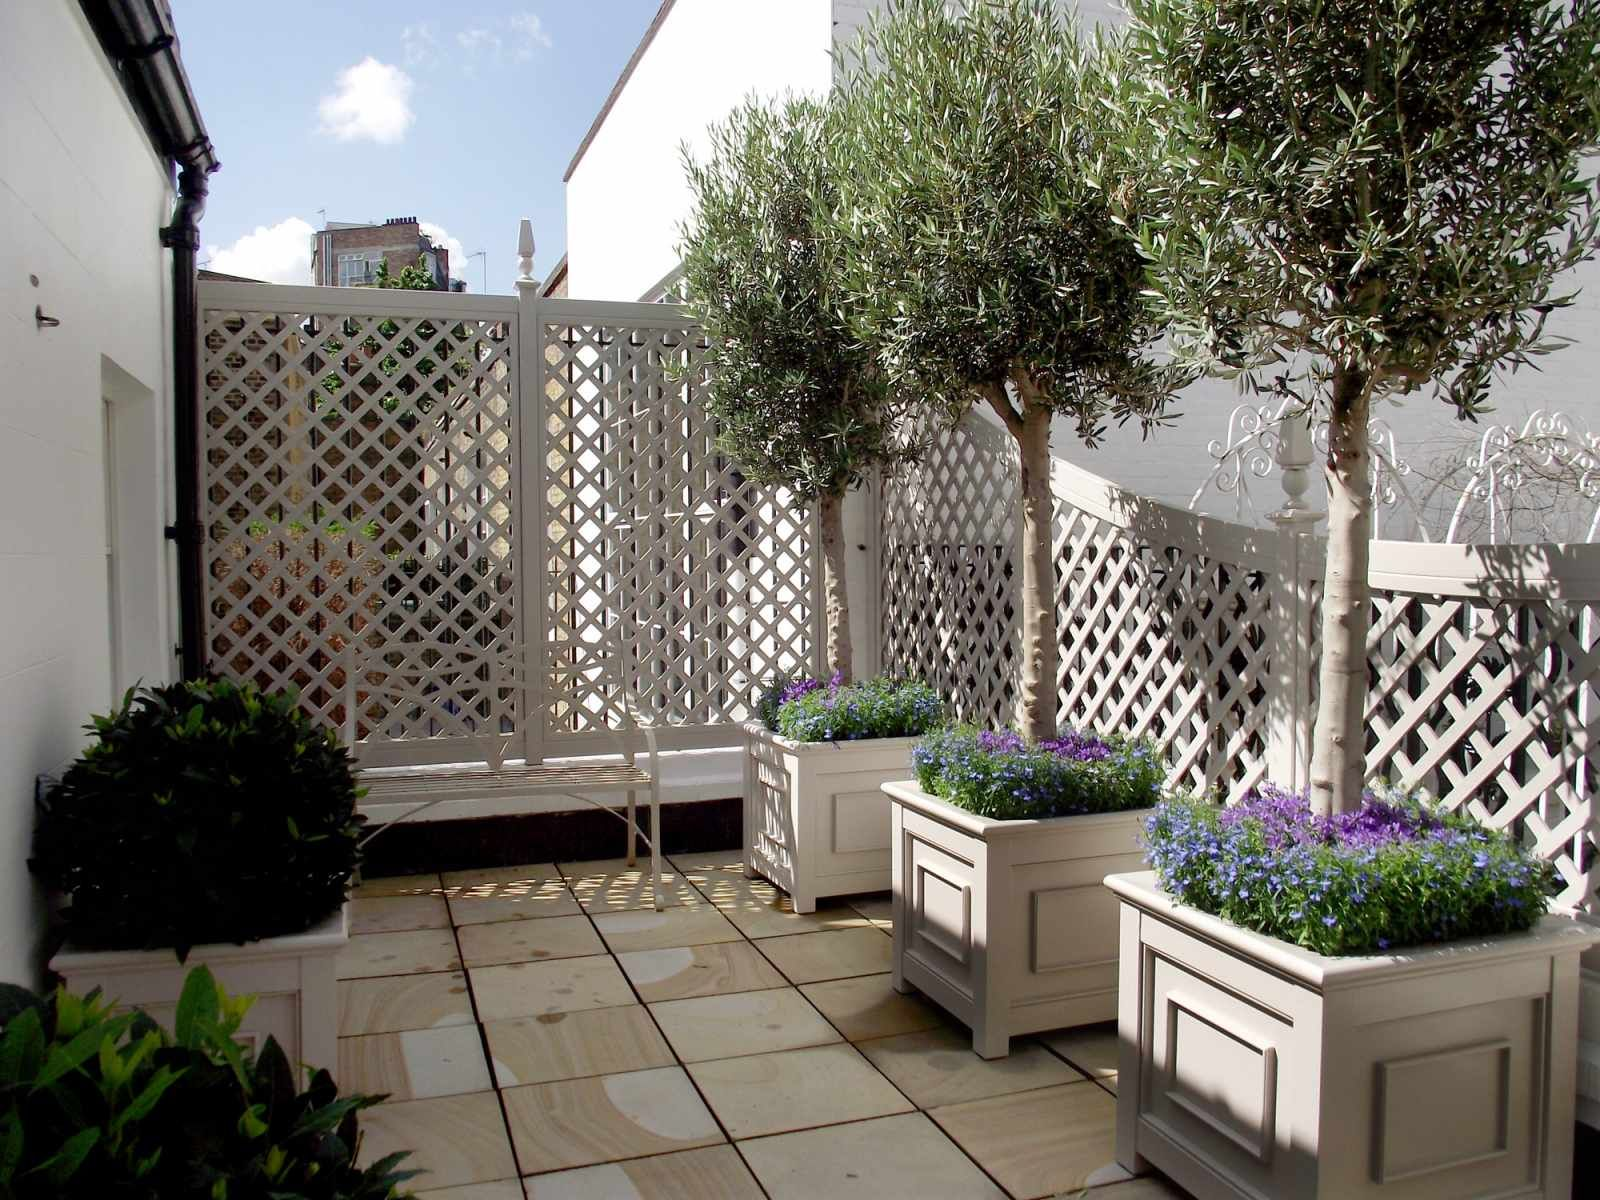 Photo of Painted bespoke planters and trellis